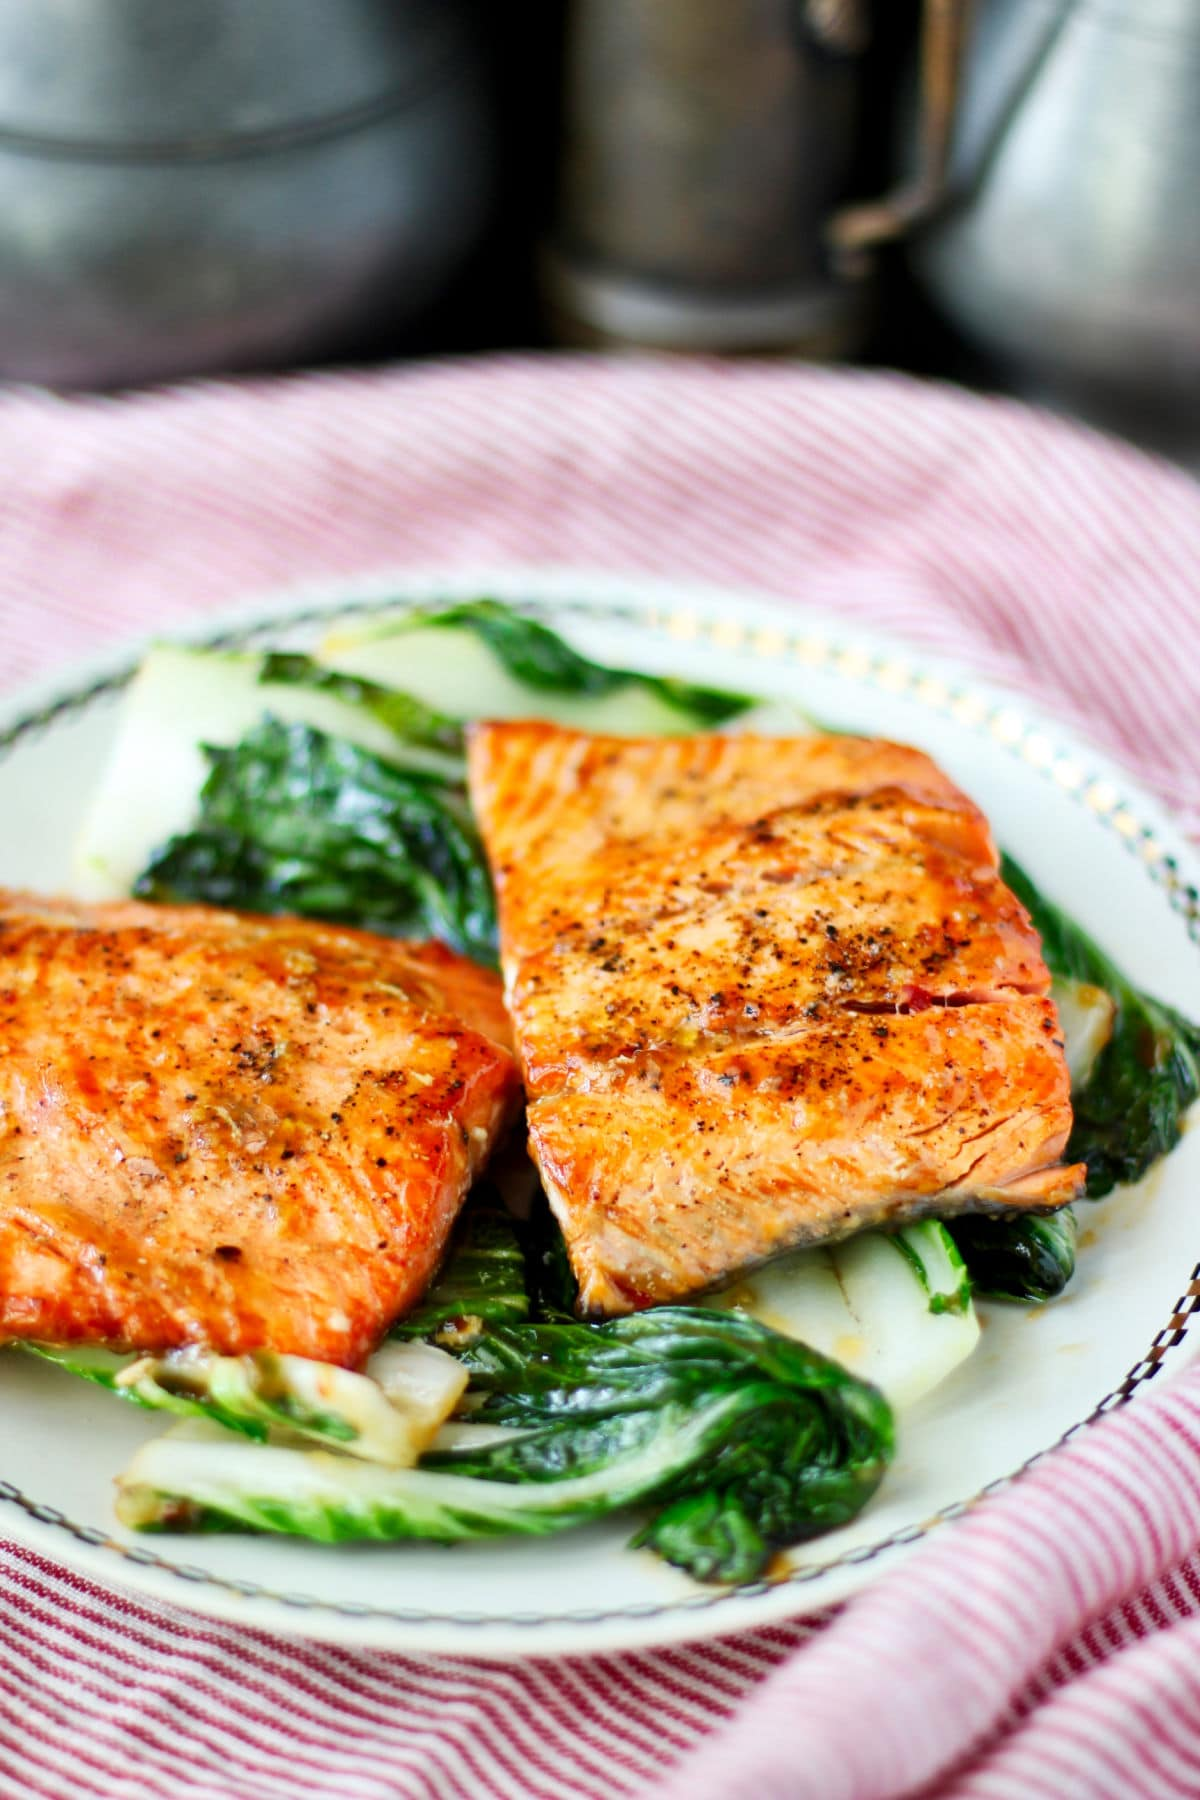 Chili-Glazed Salmon for Two on a platter